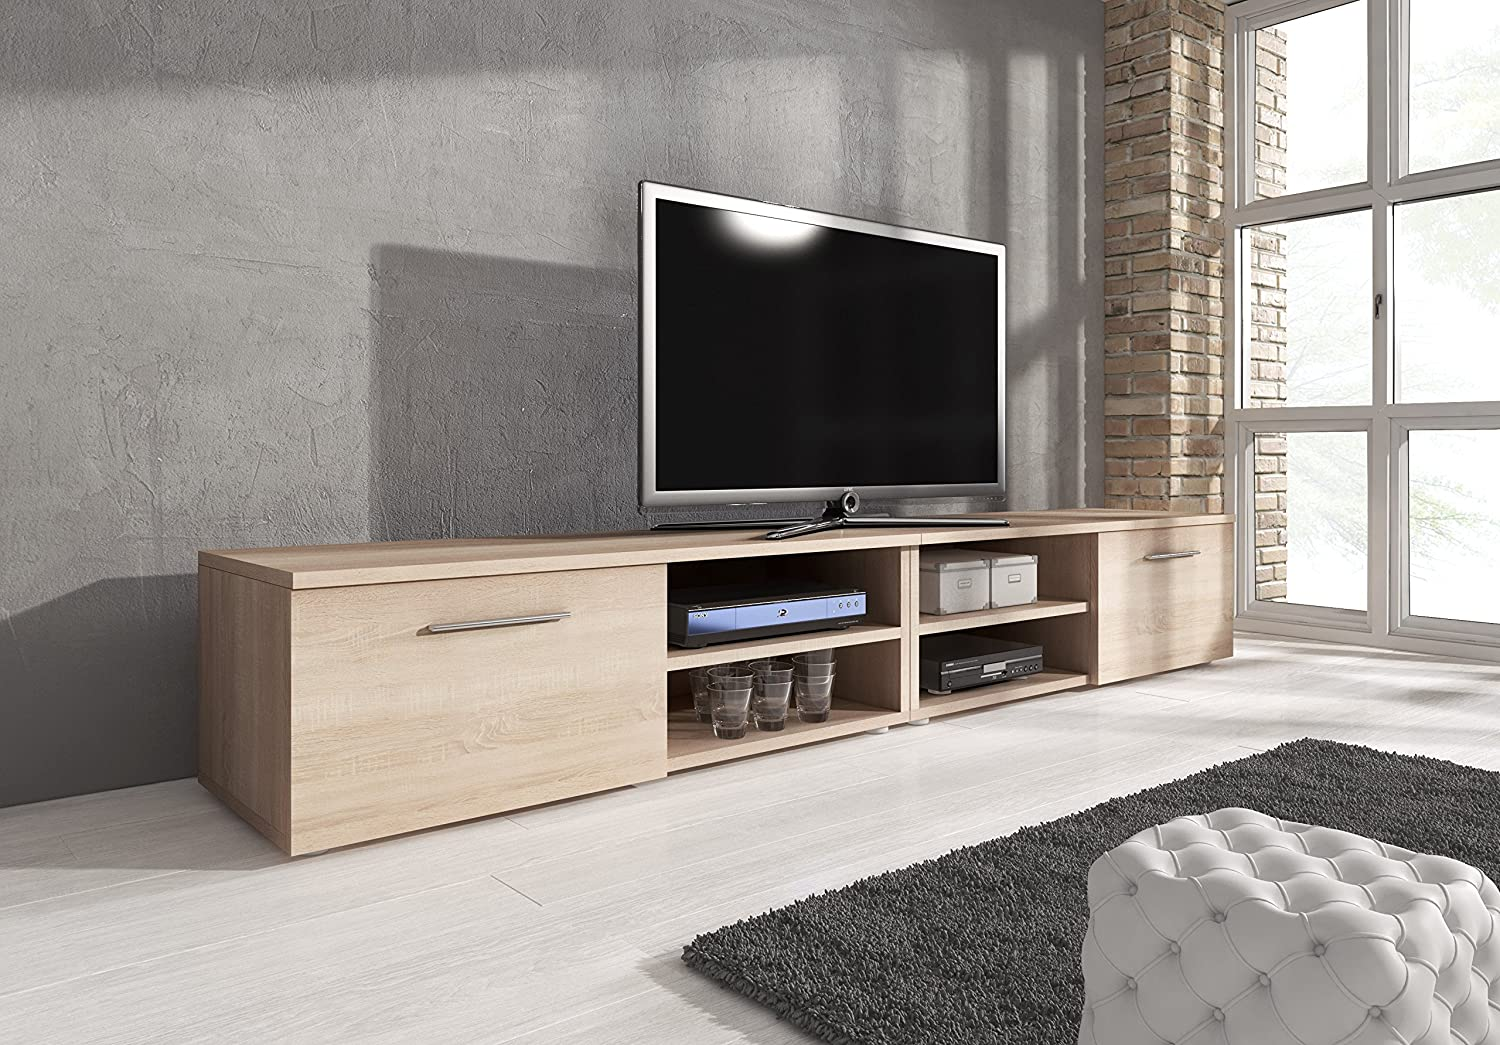 tv mbel eiche hell excellent tv mbel eiche hell wunderbar eckschrank tv with tv mbel eiche hell. Black Bedroom Furniture Sets. Home Design Ideas